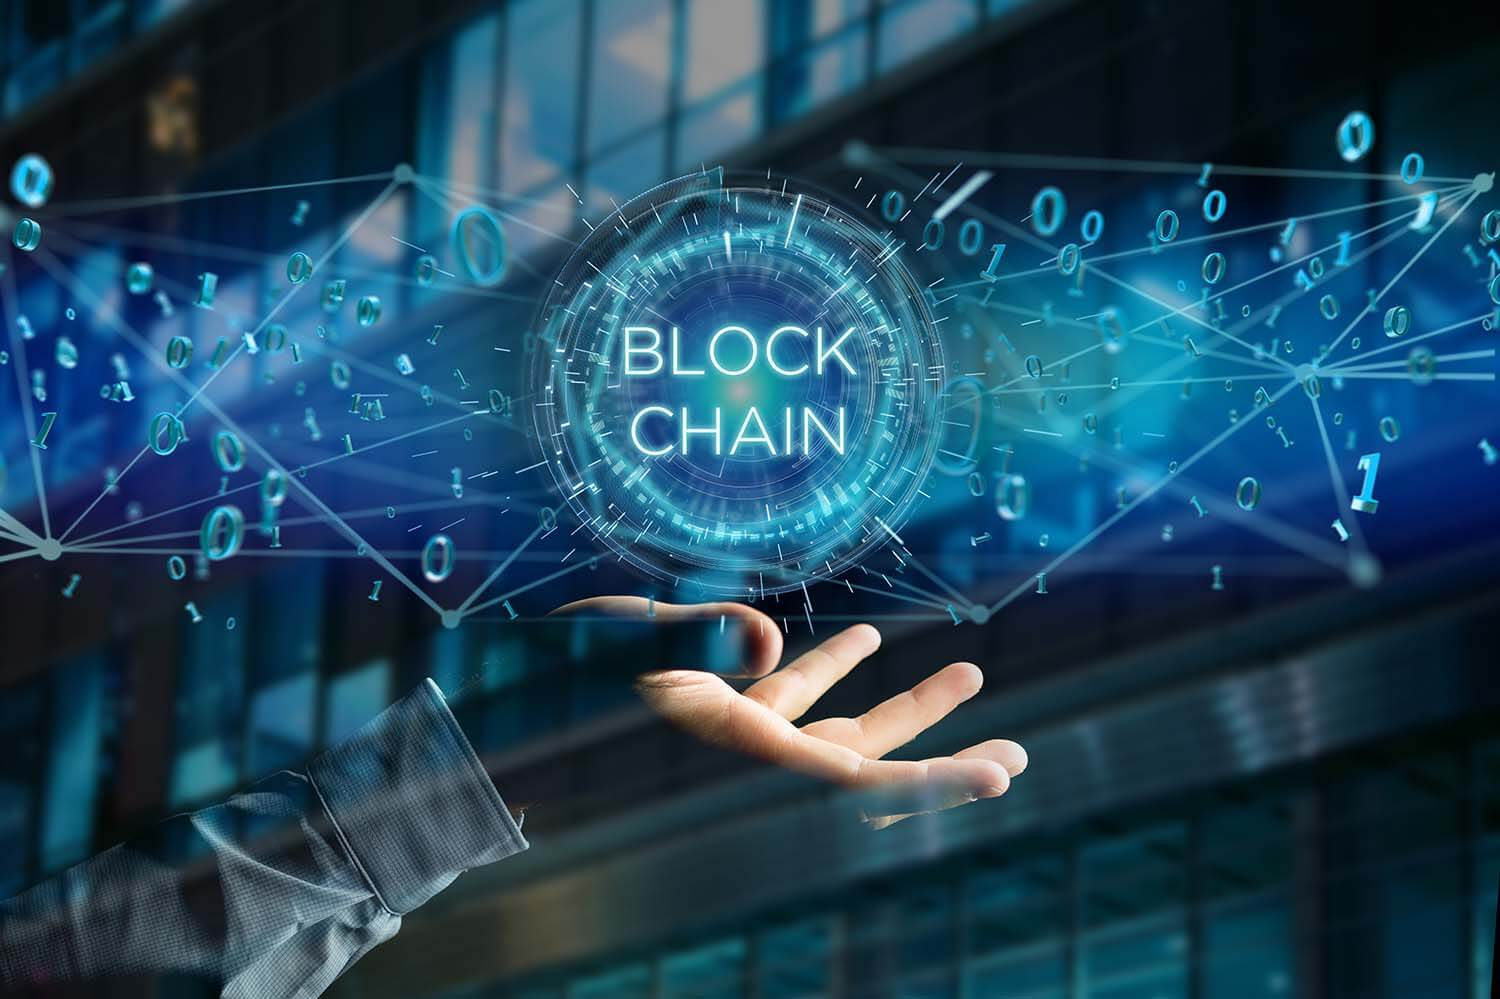 Blockchain Has Unique Functionalities and Owns Improvising Technology